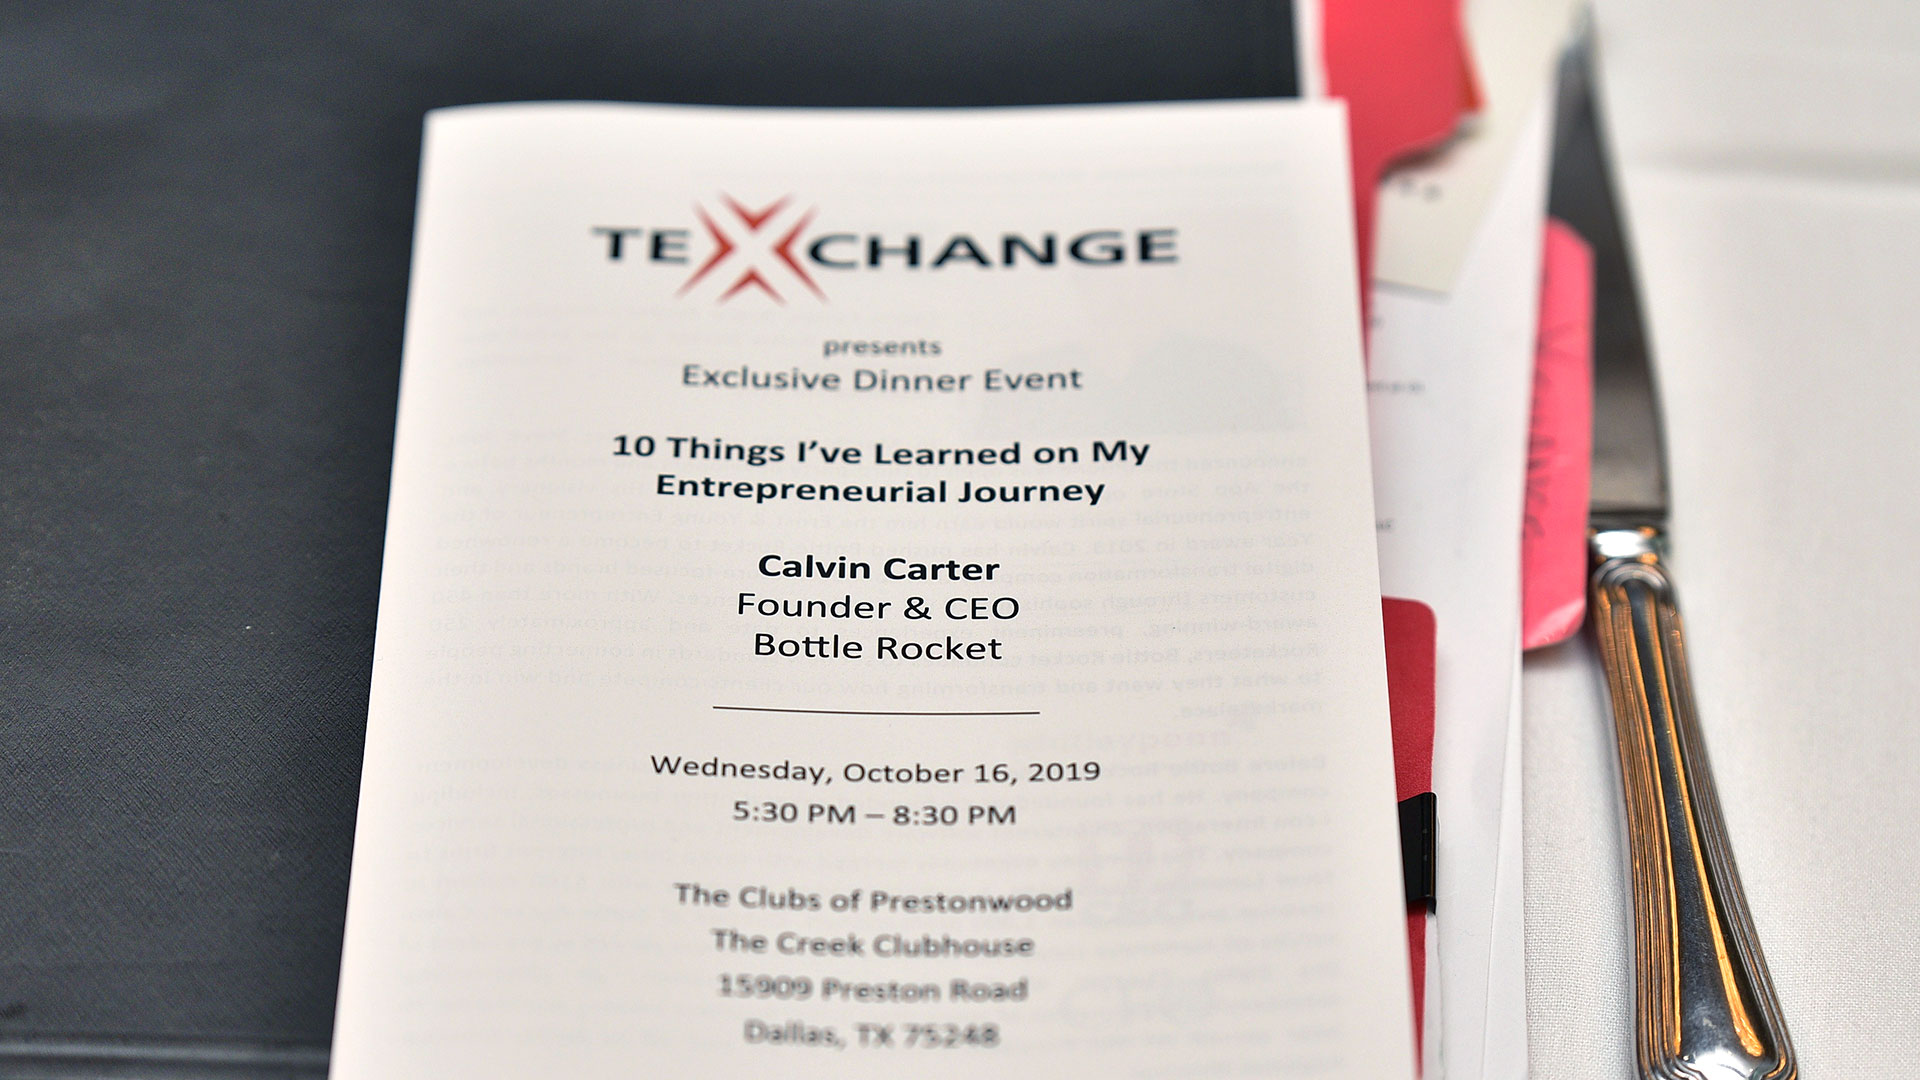 Calvin Carter to speak at upcoming TexChange Event